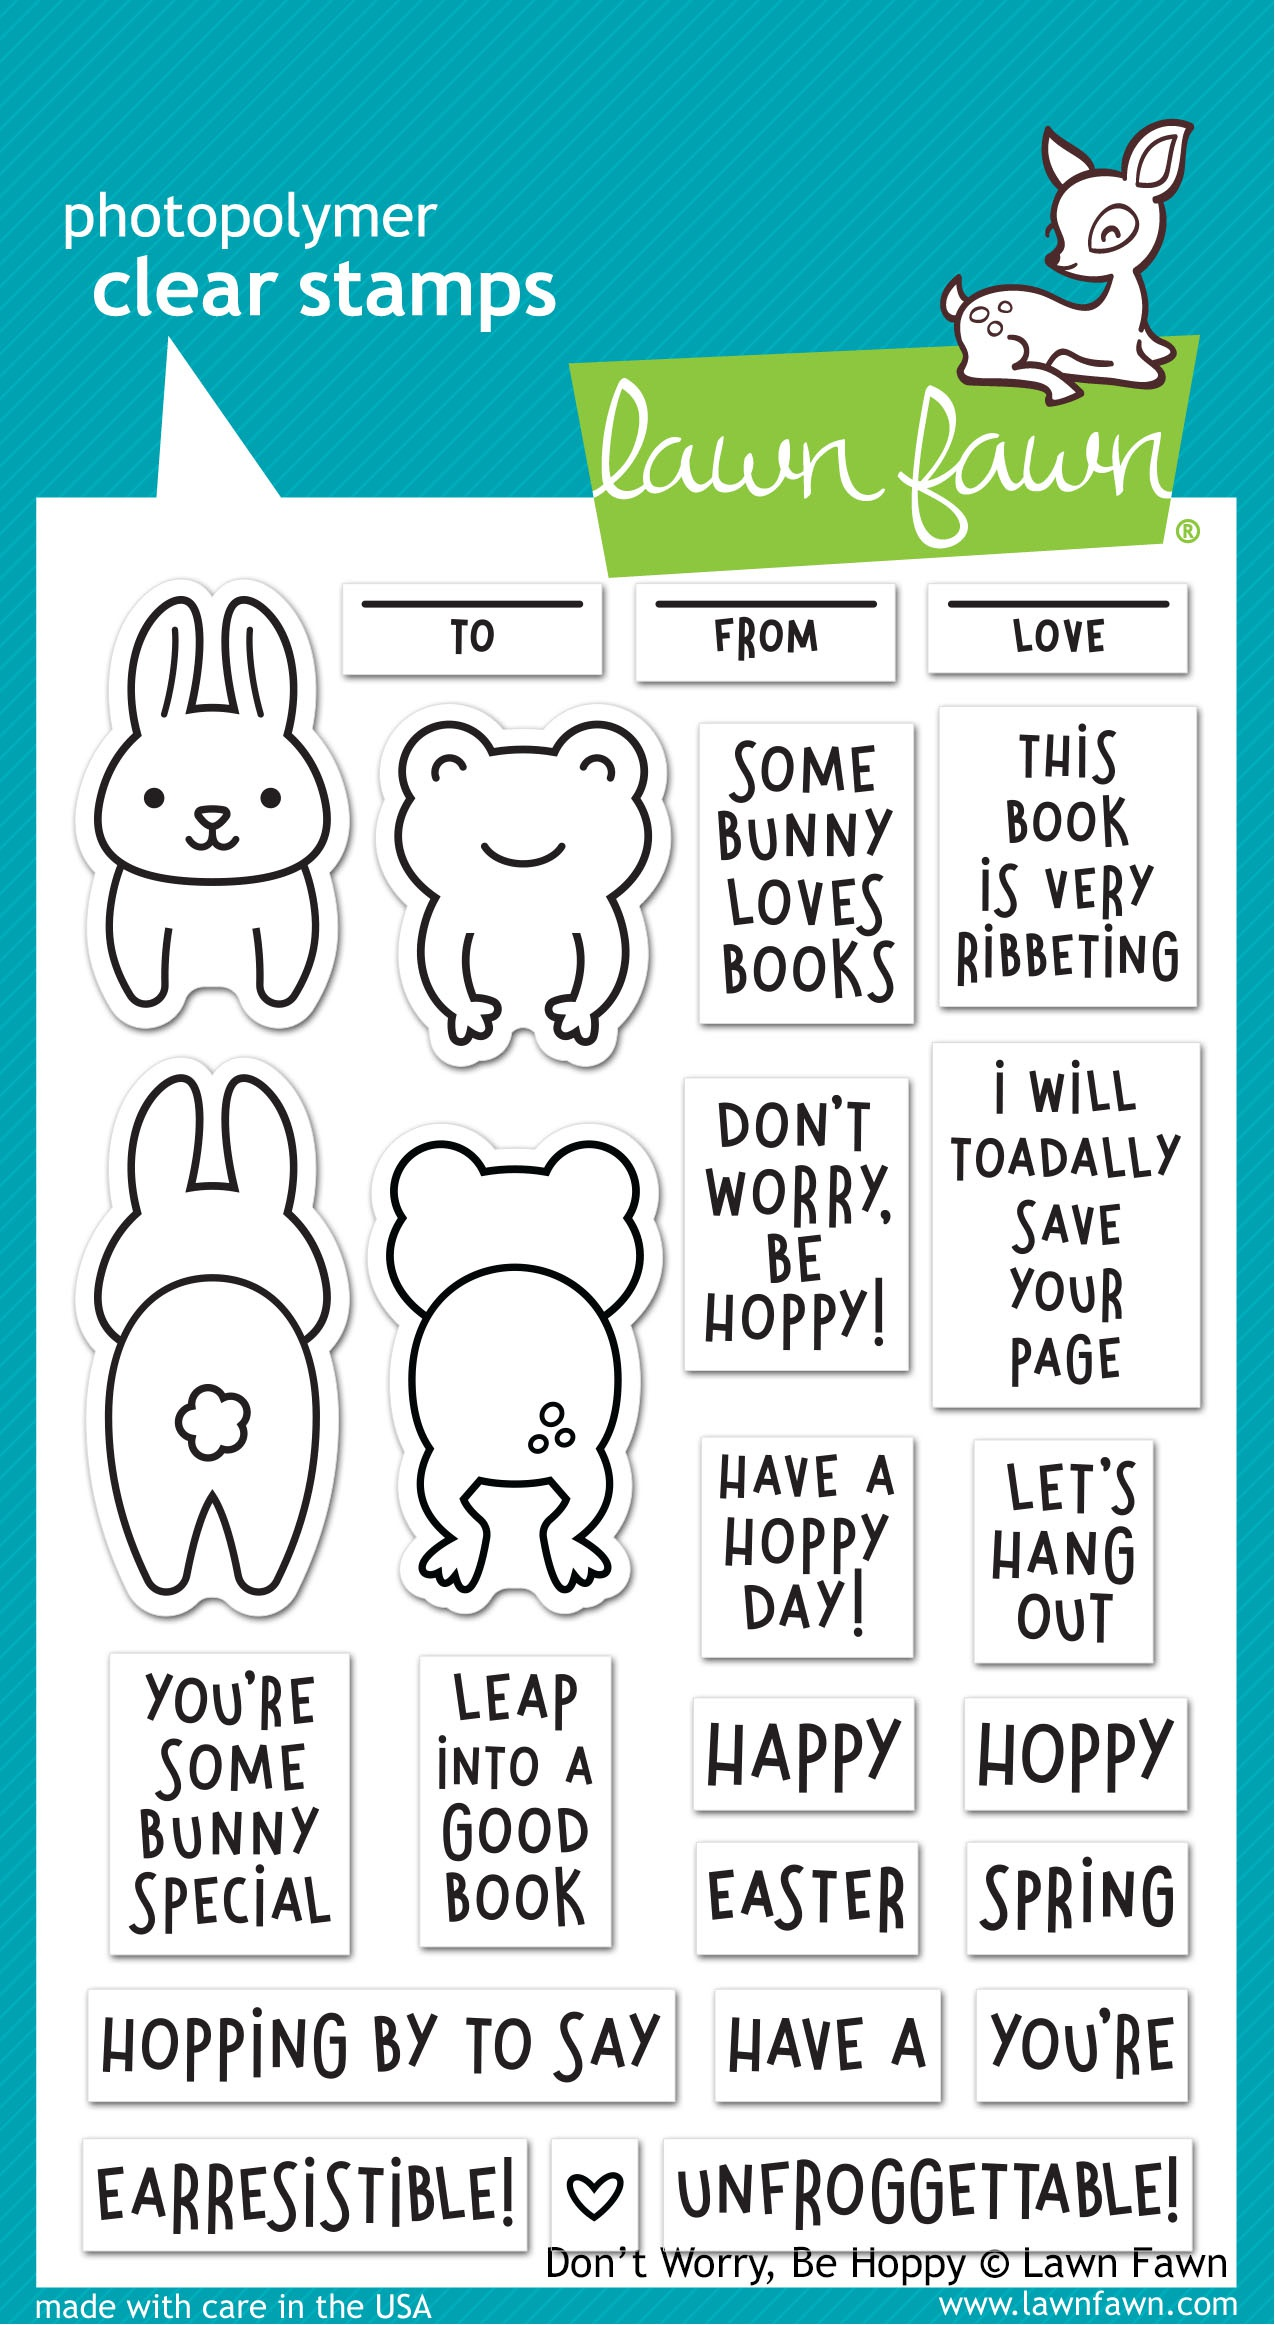 Lawn Fawn - Clear Stamps - Don't Worry, Be Hoppy